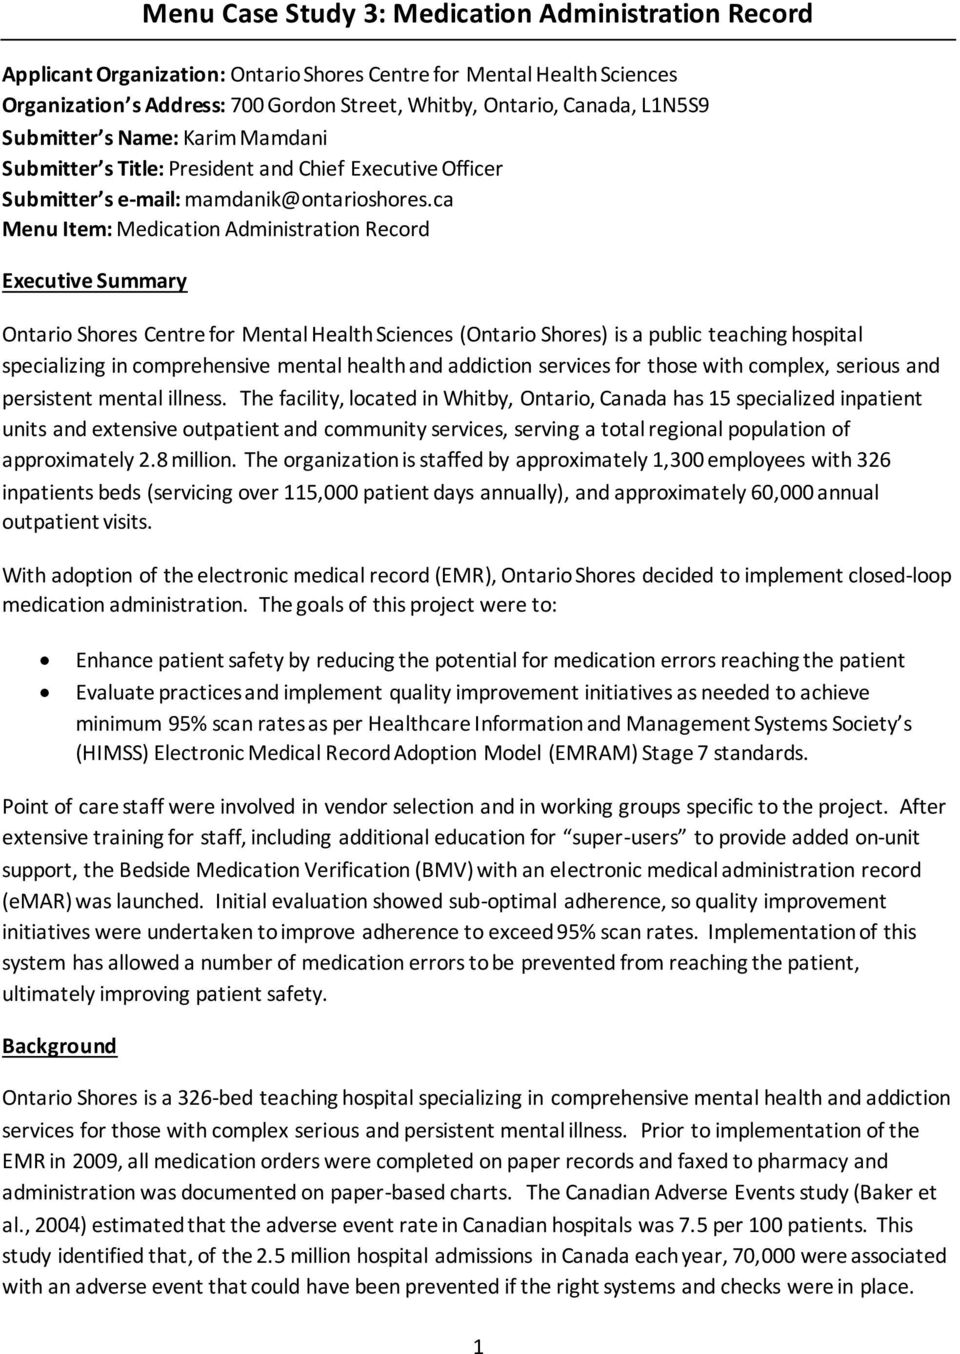 Menu Case Study 3: Medication Administration Record - PDF